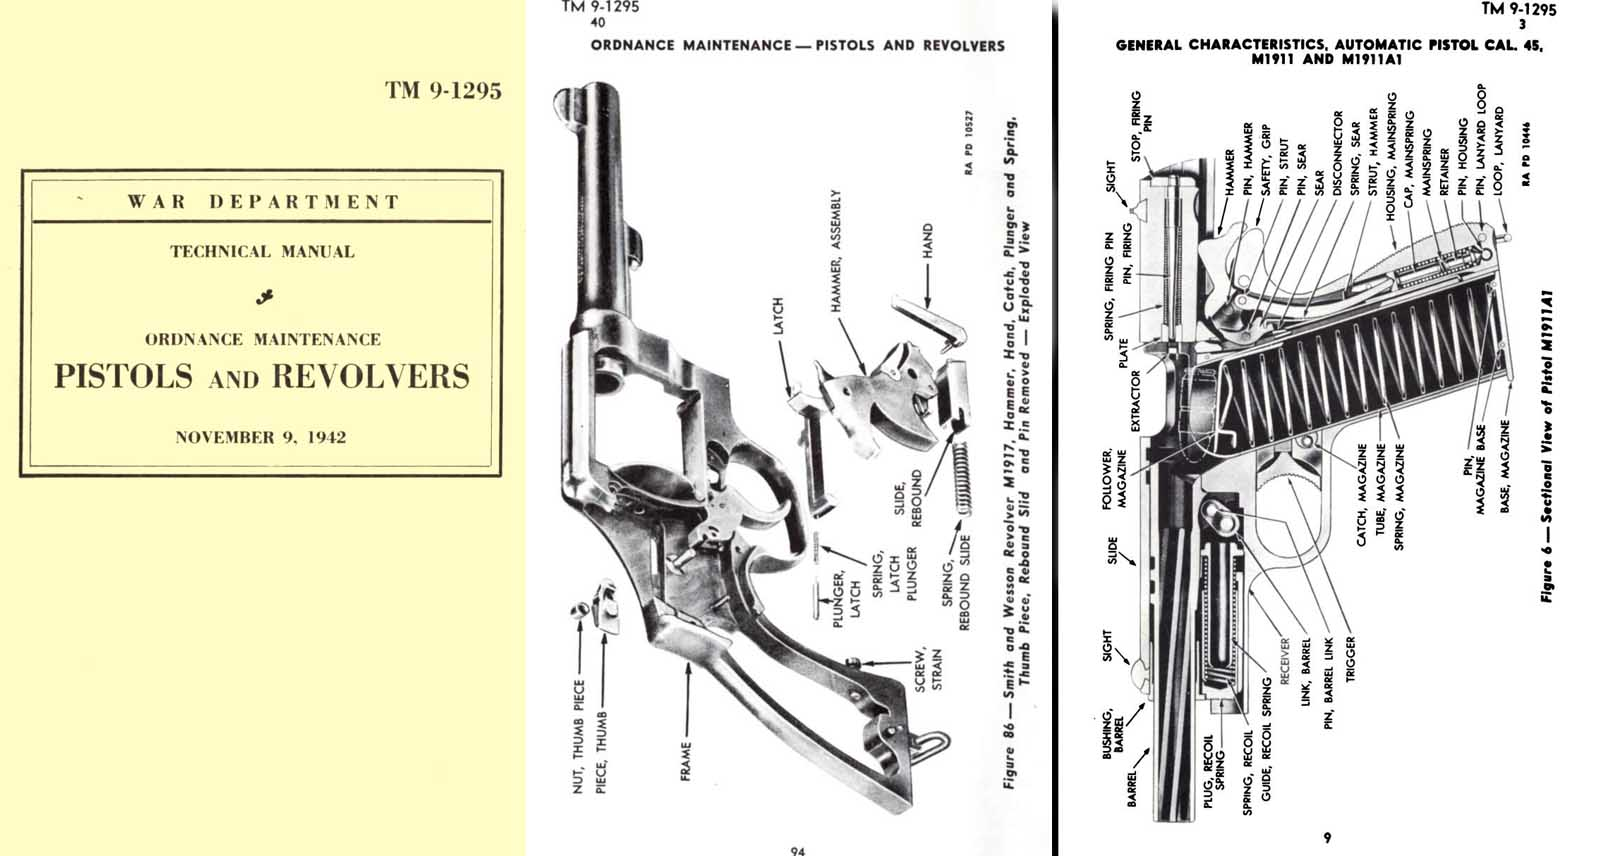 TM 9-1295 Pistols M1911A1 and Revolvers S&W .45 1942- Manual Ordnance Maint